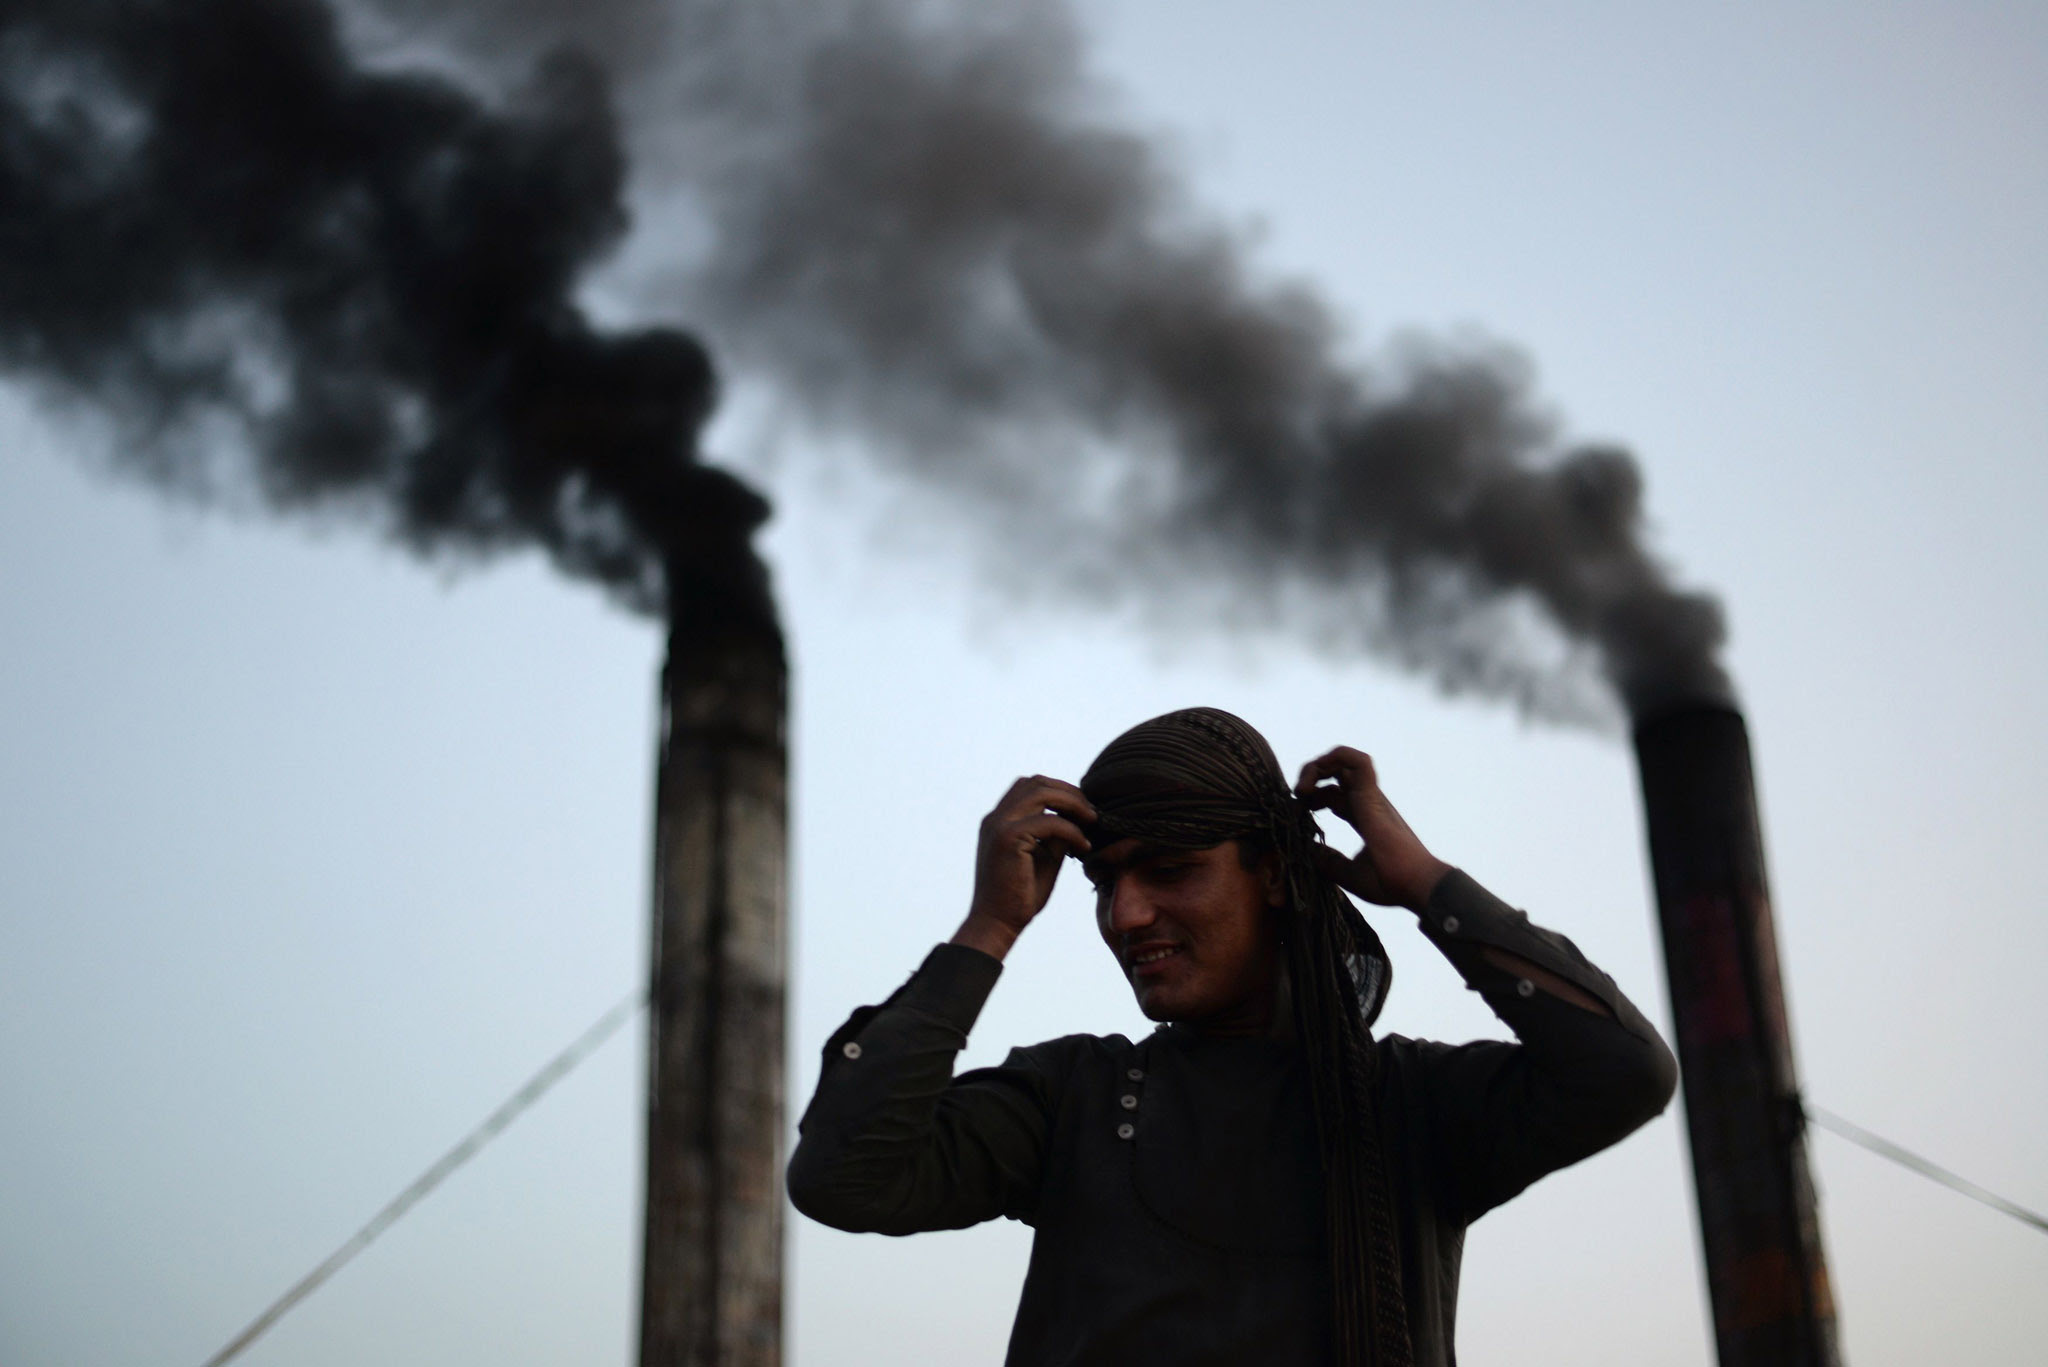 Afghan labourer Hamid Gul, 25, working at a brick factory on the outskirts Mazar-i-Sharif